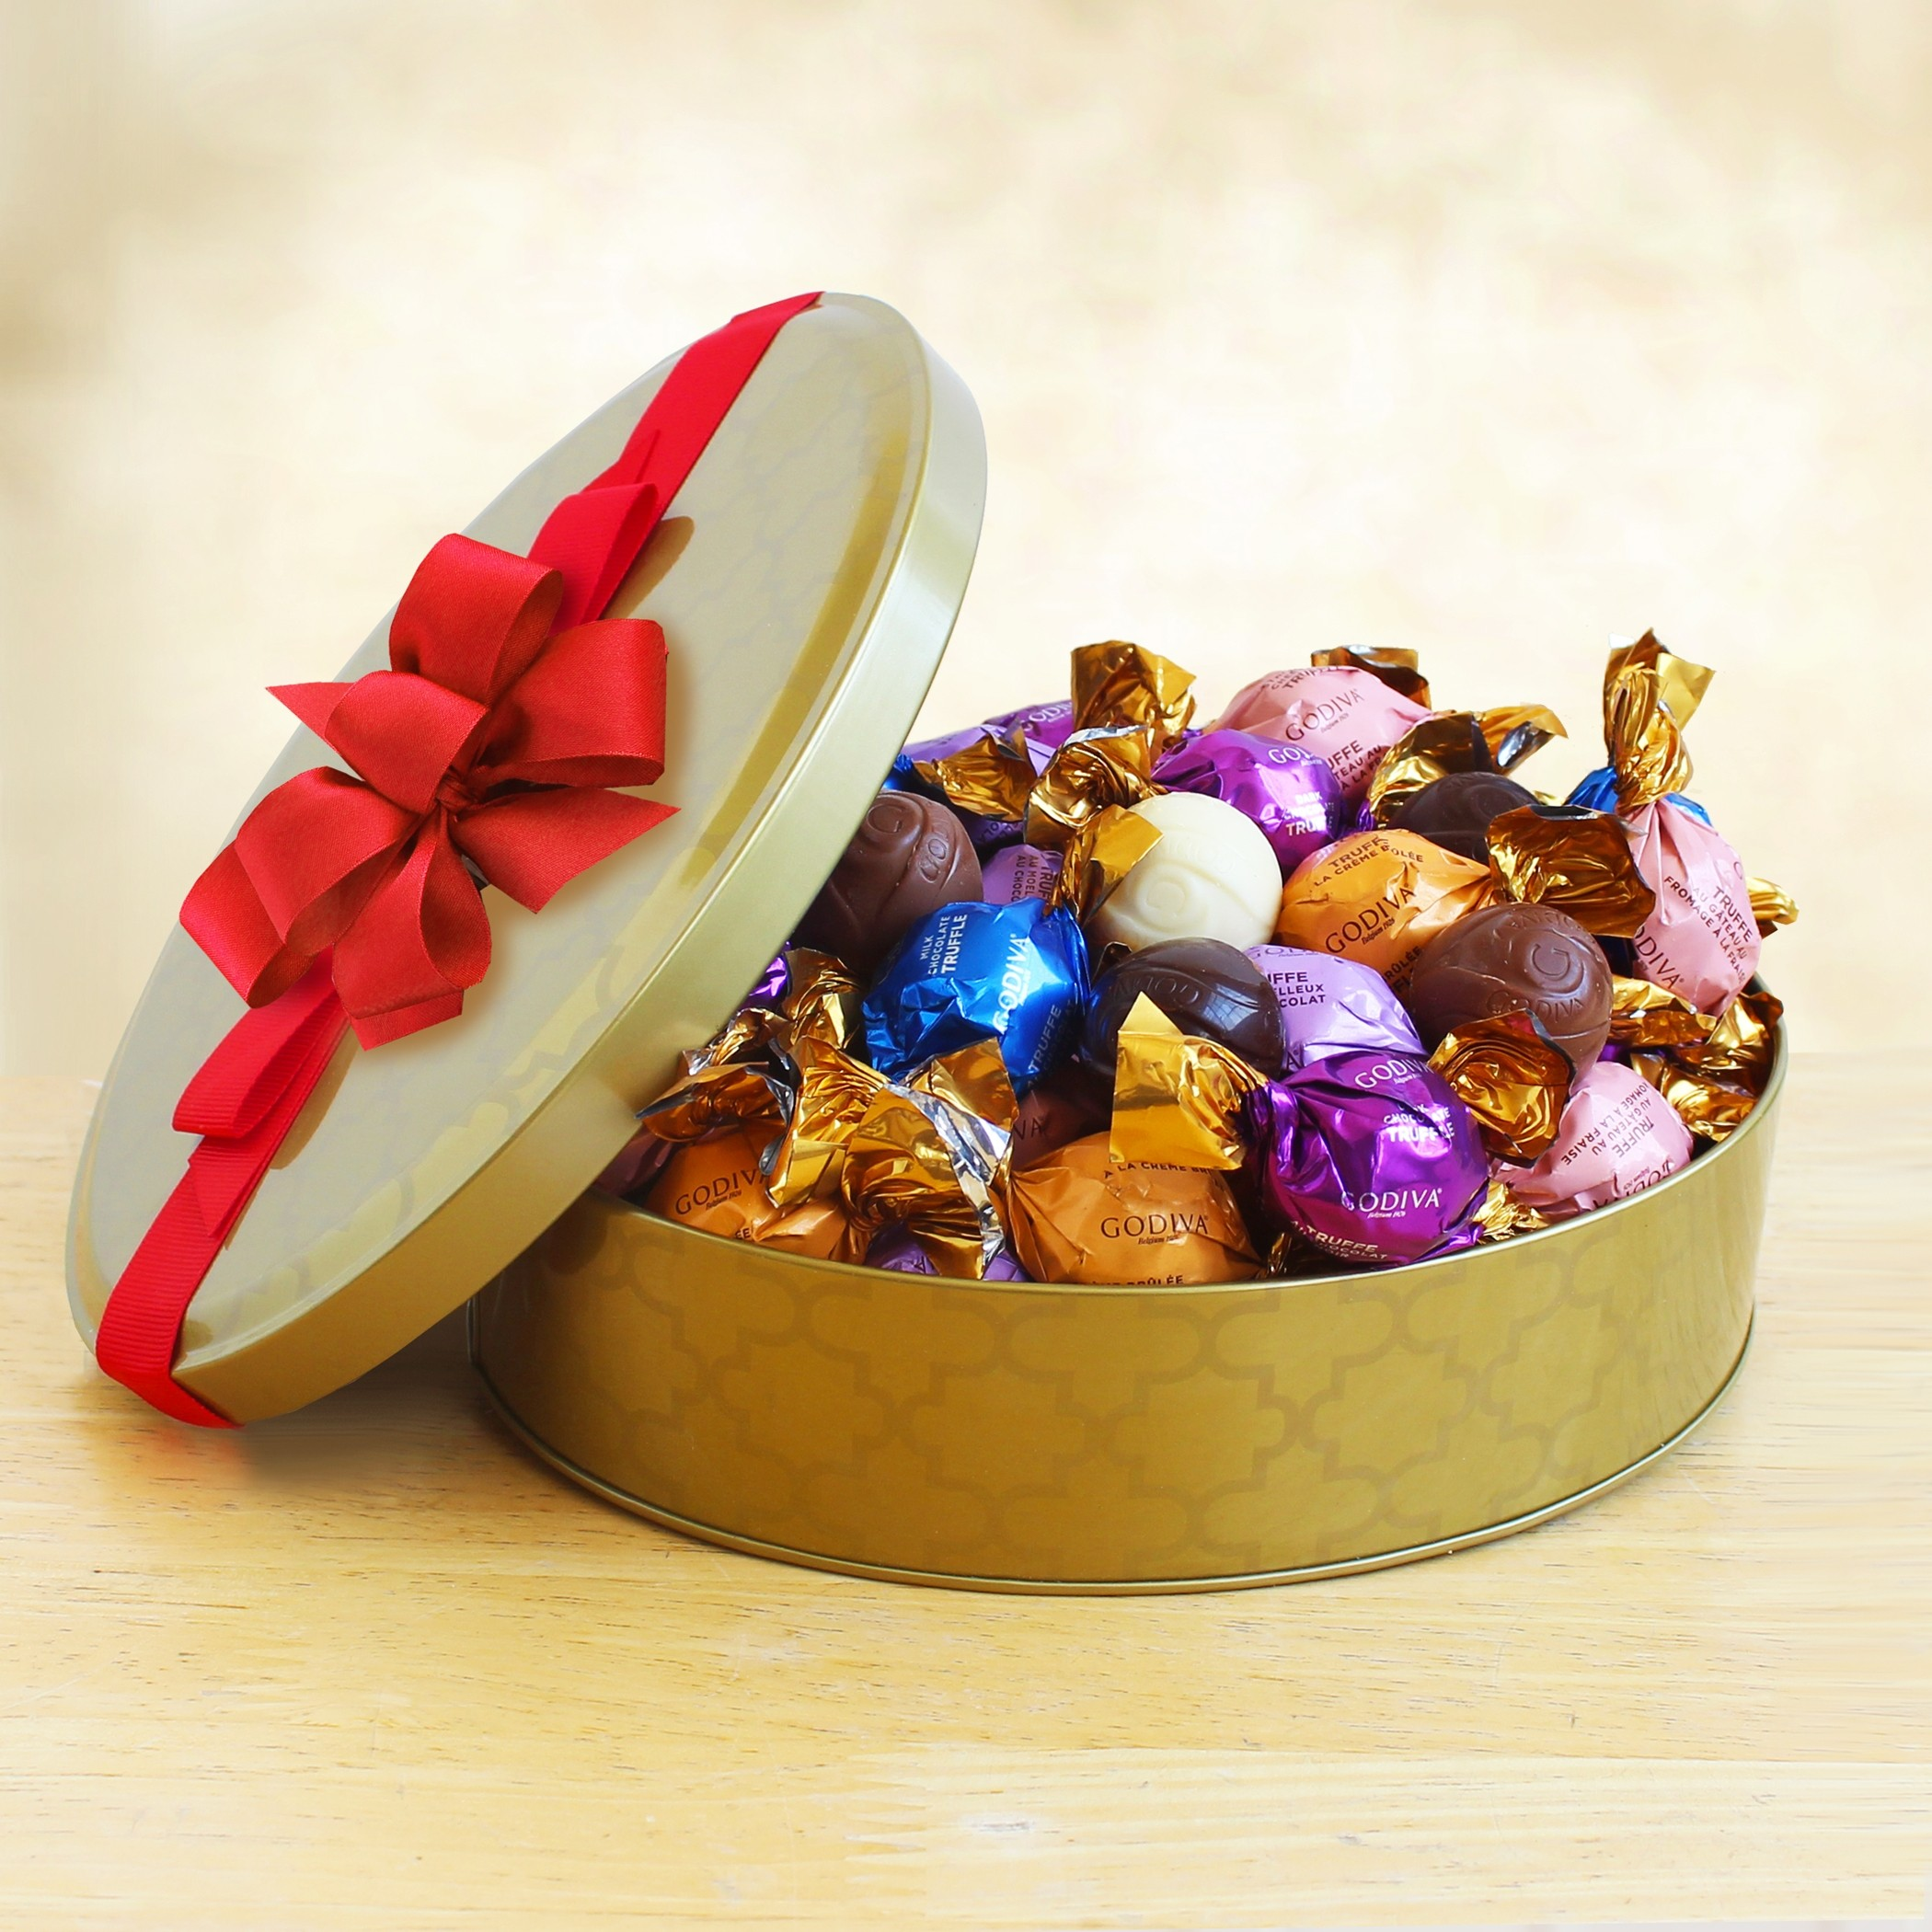 Godiva Assorted Truffles Tin Gift